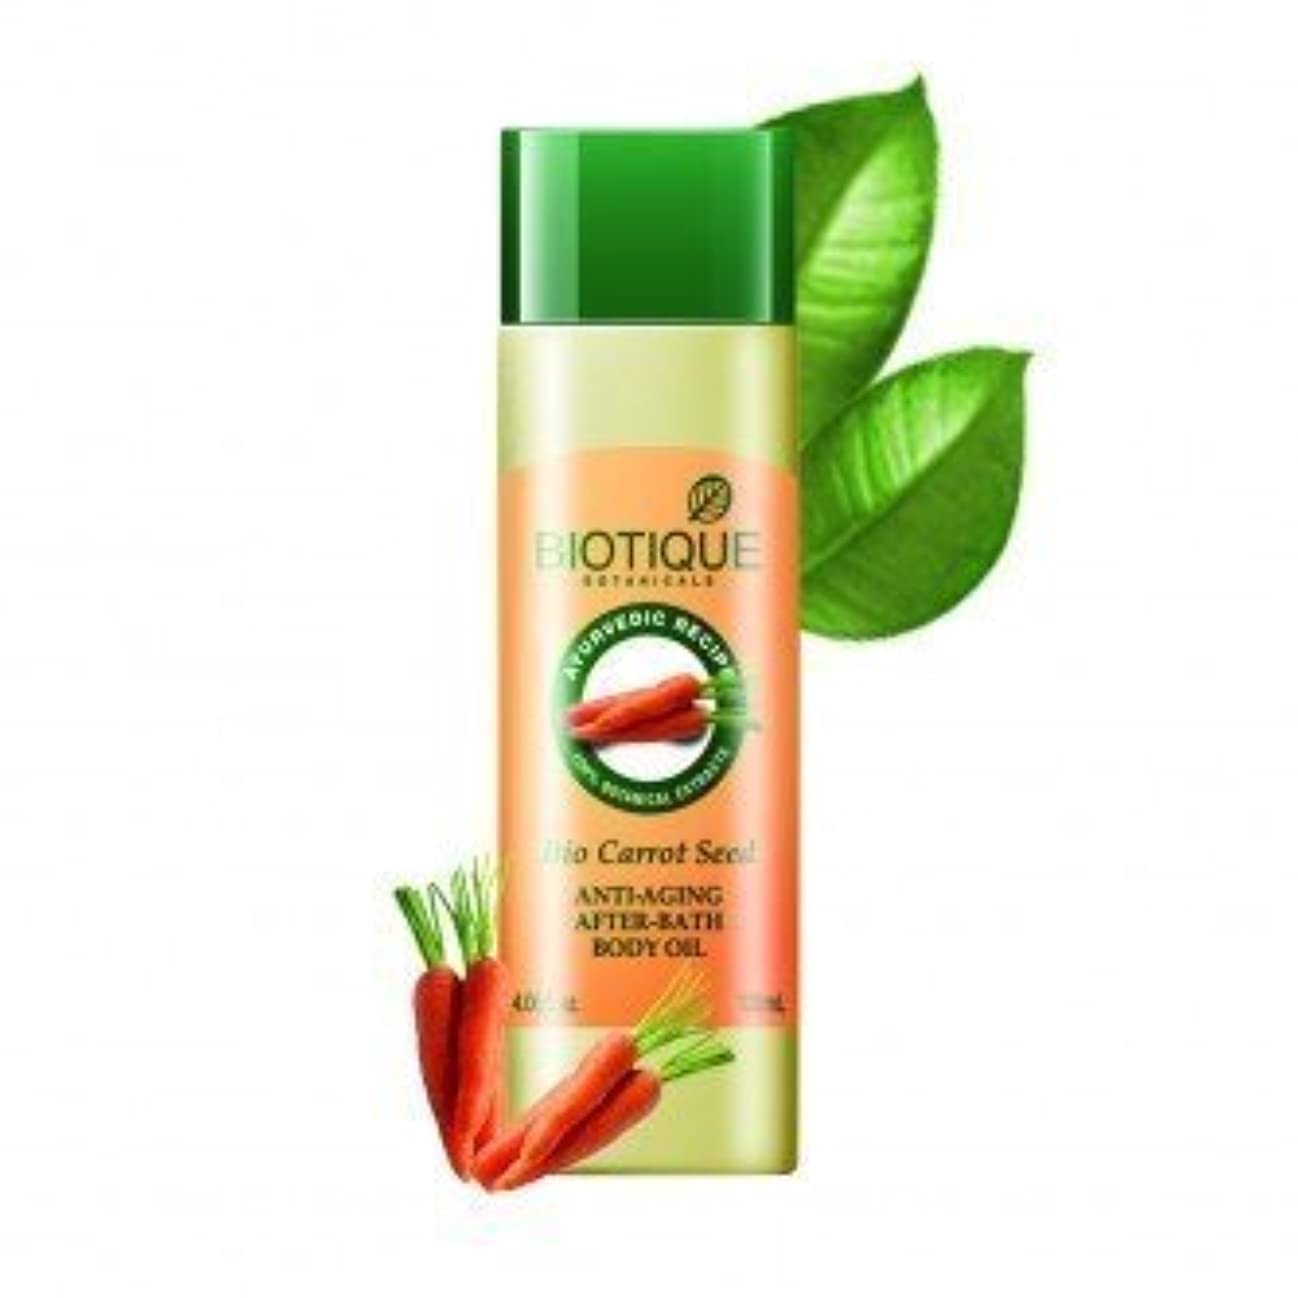 前進パドル爵Biotique Bio Carrot Seed Anti-Aging After-Bath Body Oil 120 Ml (Ship From India)